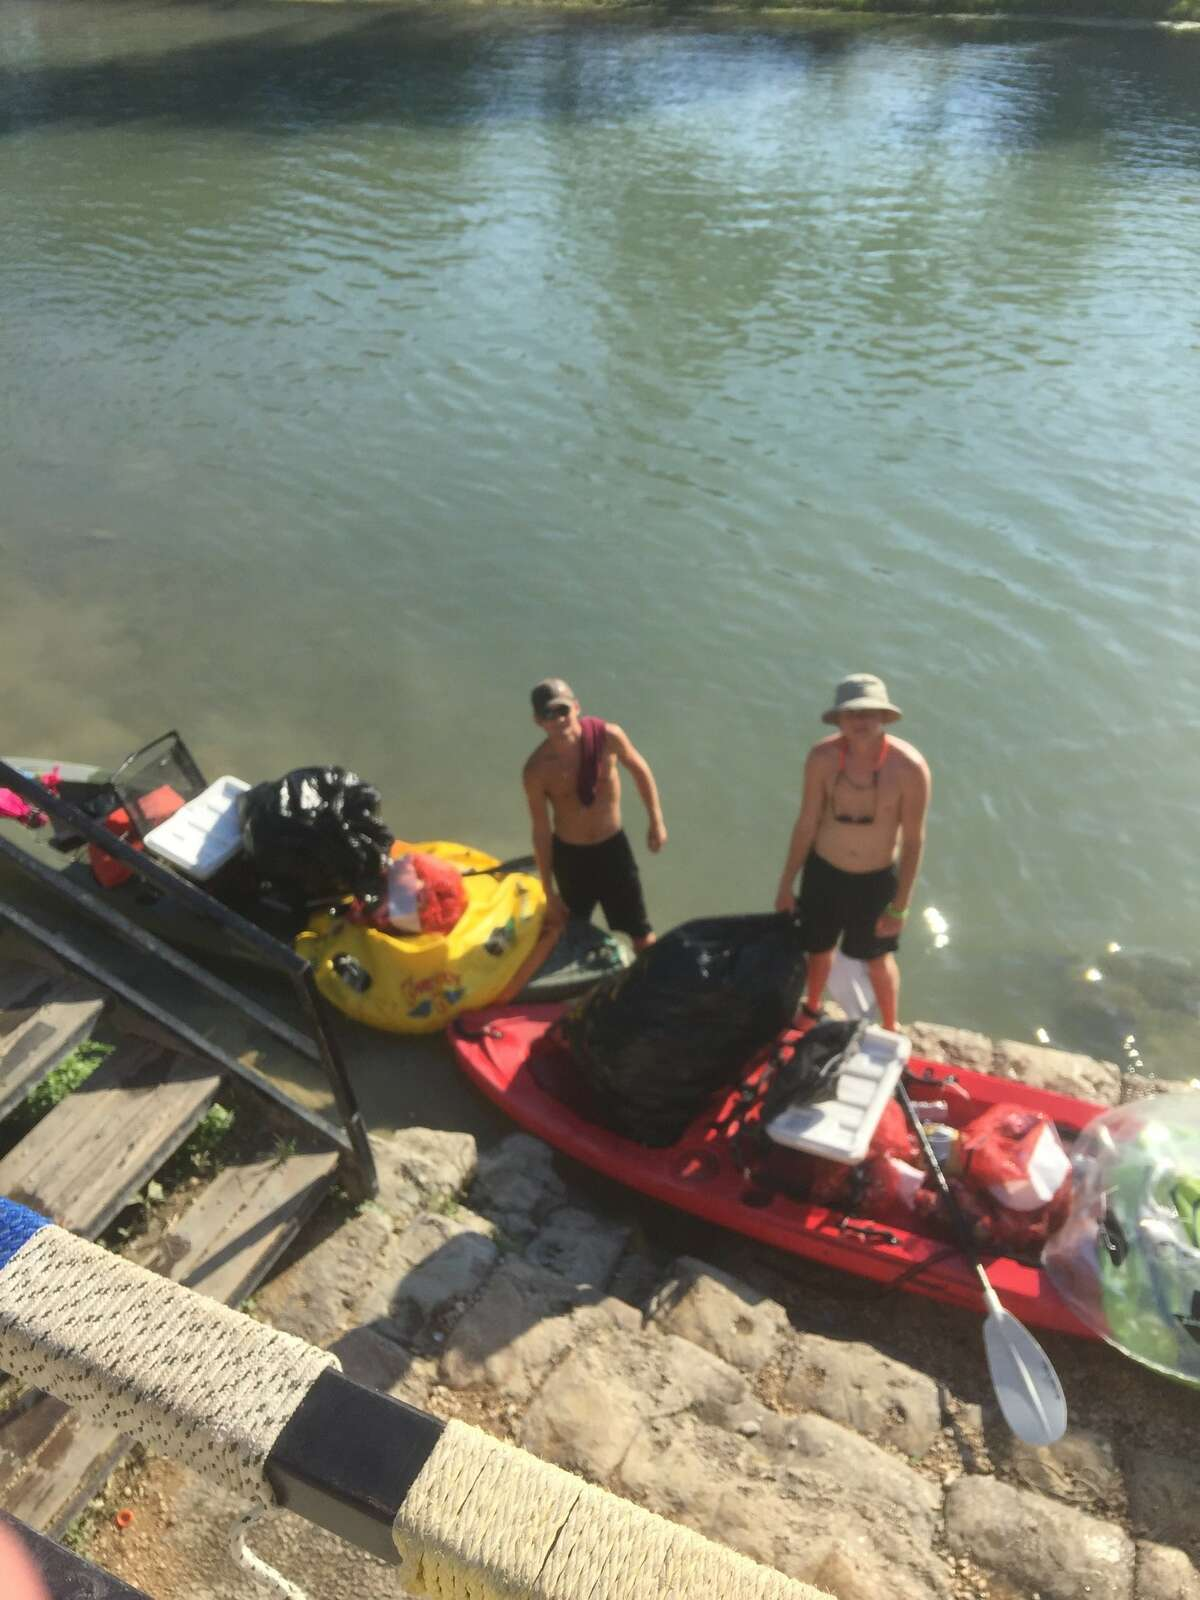 Richard Lawrence, with Texas State Tubes, shared photos showing the San Marcos River cleanup on May 29, 2018, following Memorial Day Weekend. He told mySA.com the cans seen in the video shared by Tom Goynes are no longer in the water.